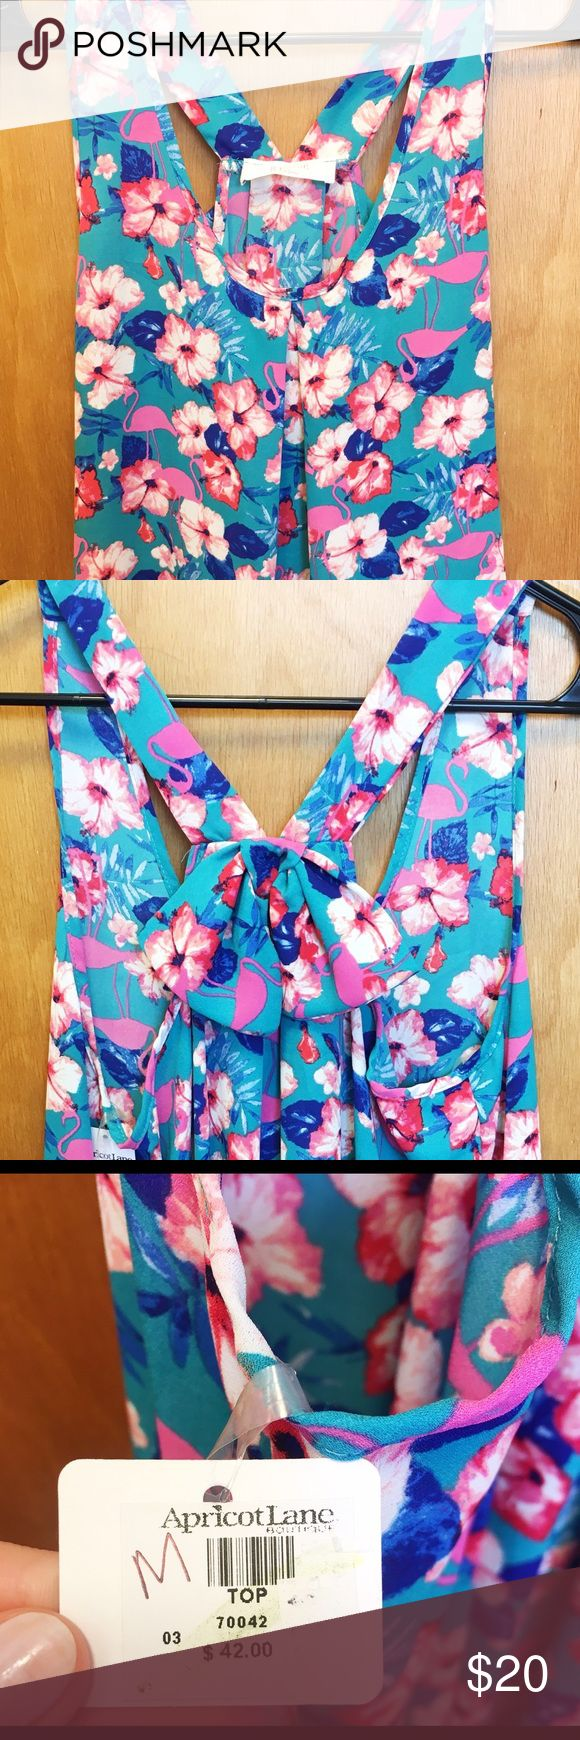 Cute Apricot Lane Flamingos/Floral Bow Top- NWT This is a never worn, Apricot Lane tank with flamingo and floral print and cute bow detail in the back. It still has the tags attached. It's a size medium, and it's a little too big on me that's why it's never been worn. Perfect for summer! ✅ Bundle and SAVE ❌ Sorry, no trades 🚛 Fast shipping 🚫Smoke and pet free home 💟 Happy Poshing! Tops Tank Tops